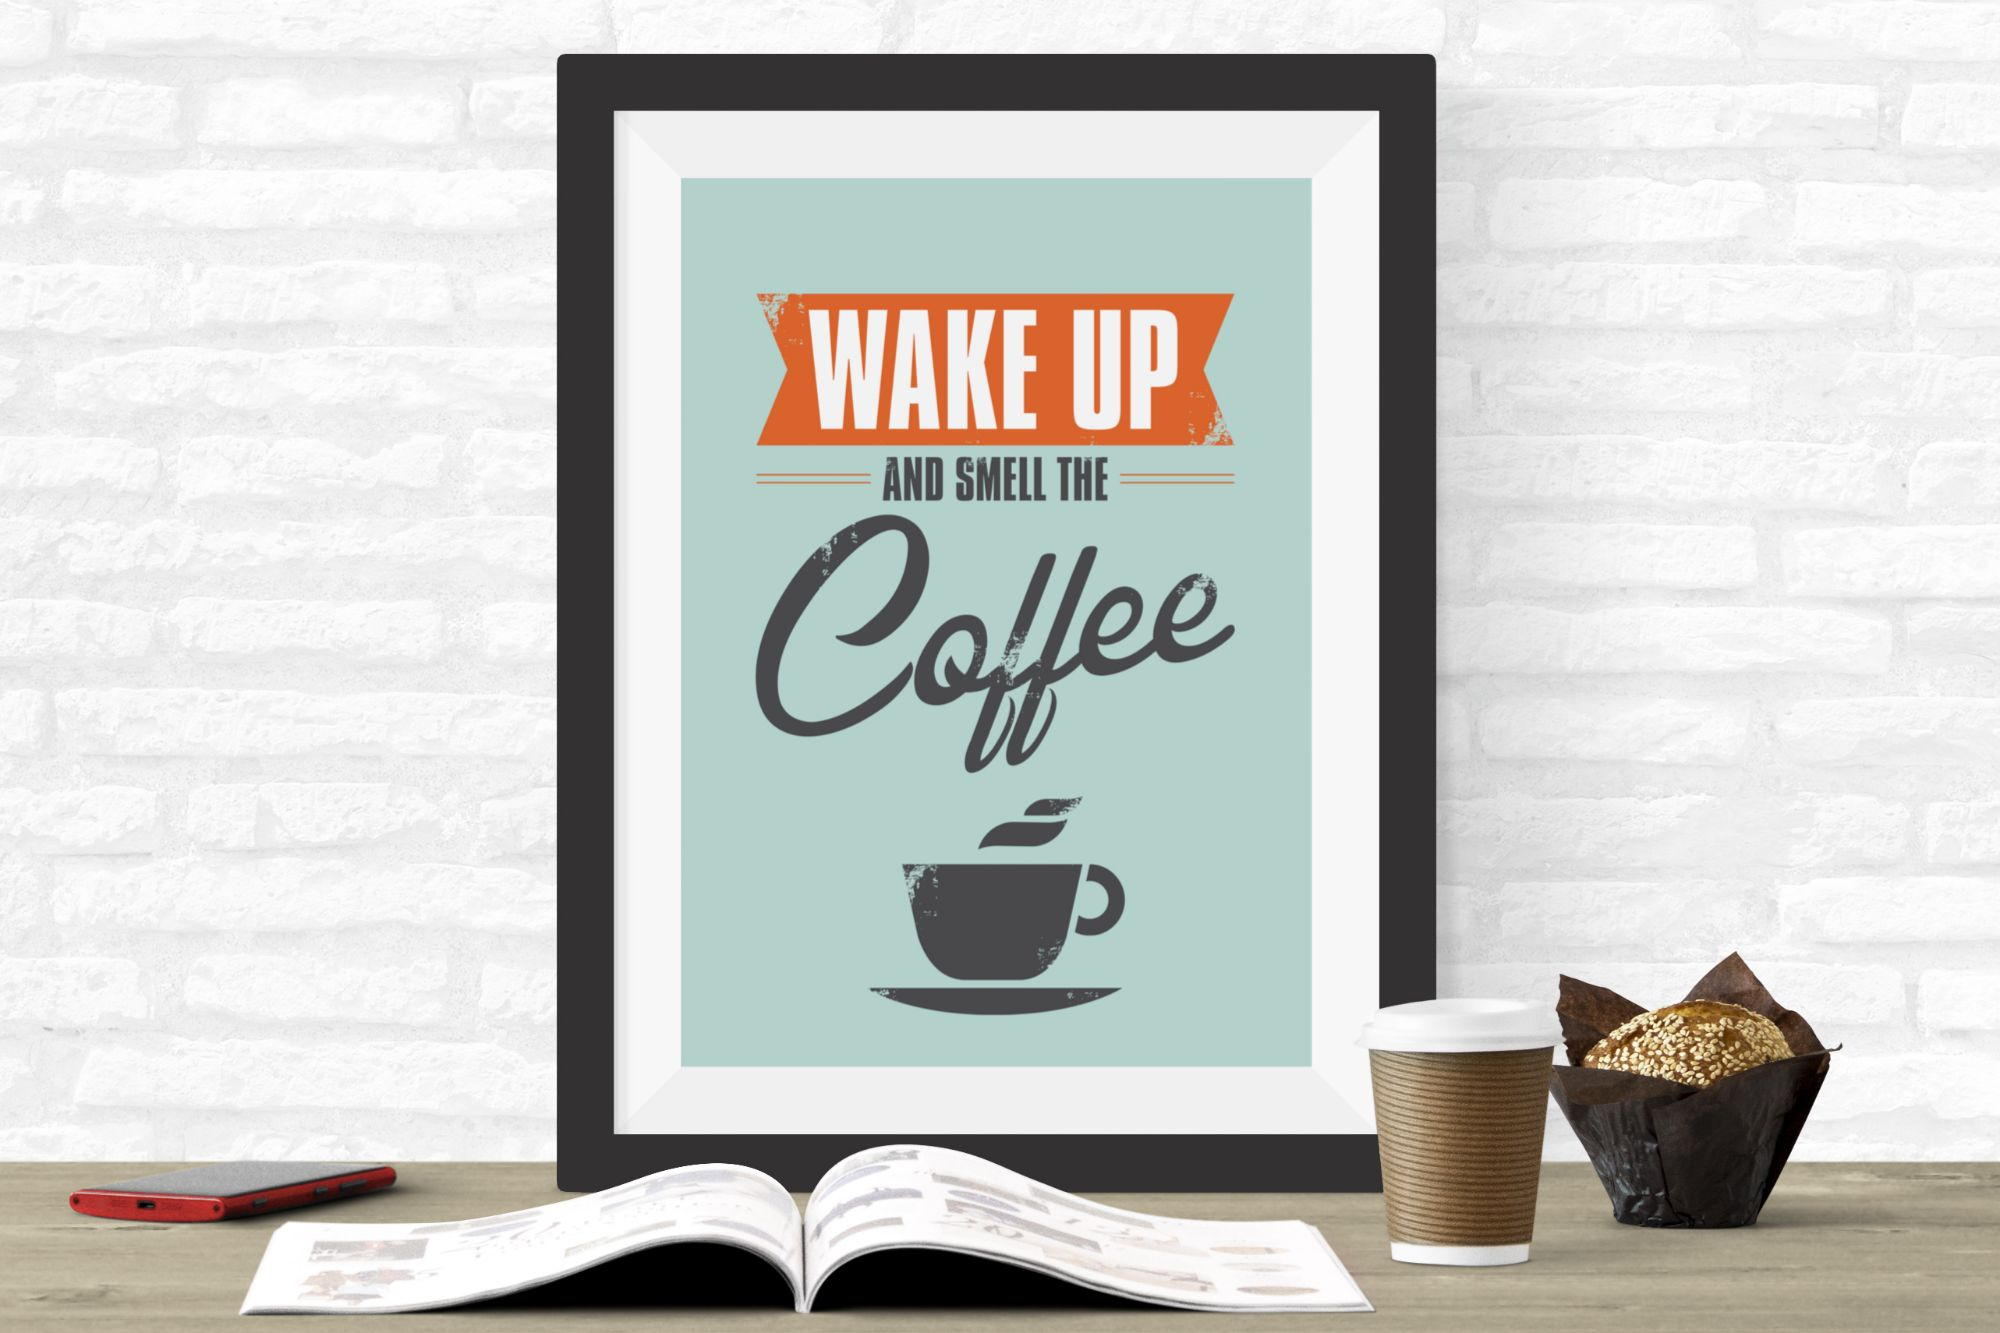 Wake-up-and-smell-the-coffee-3x2-darken